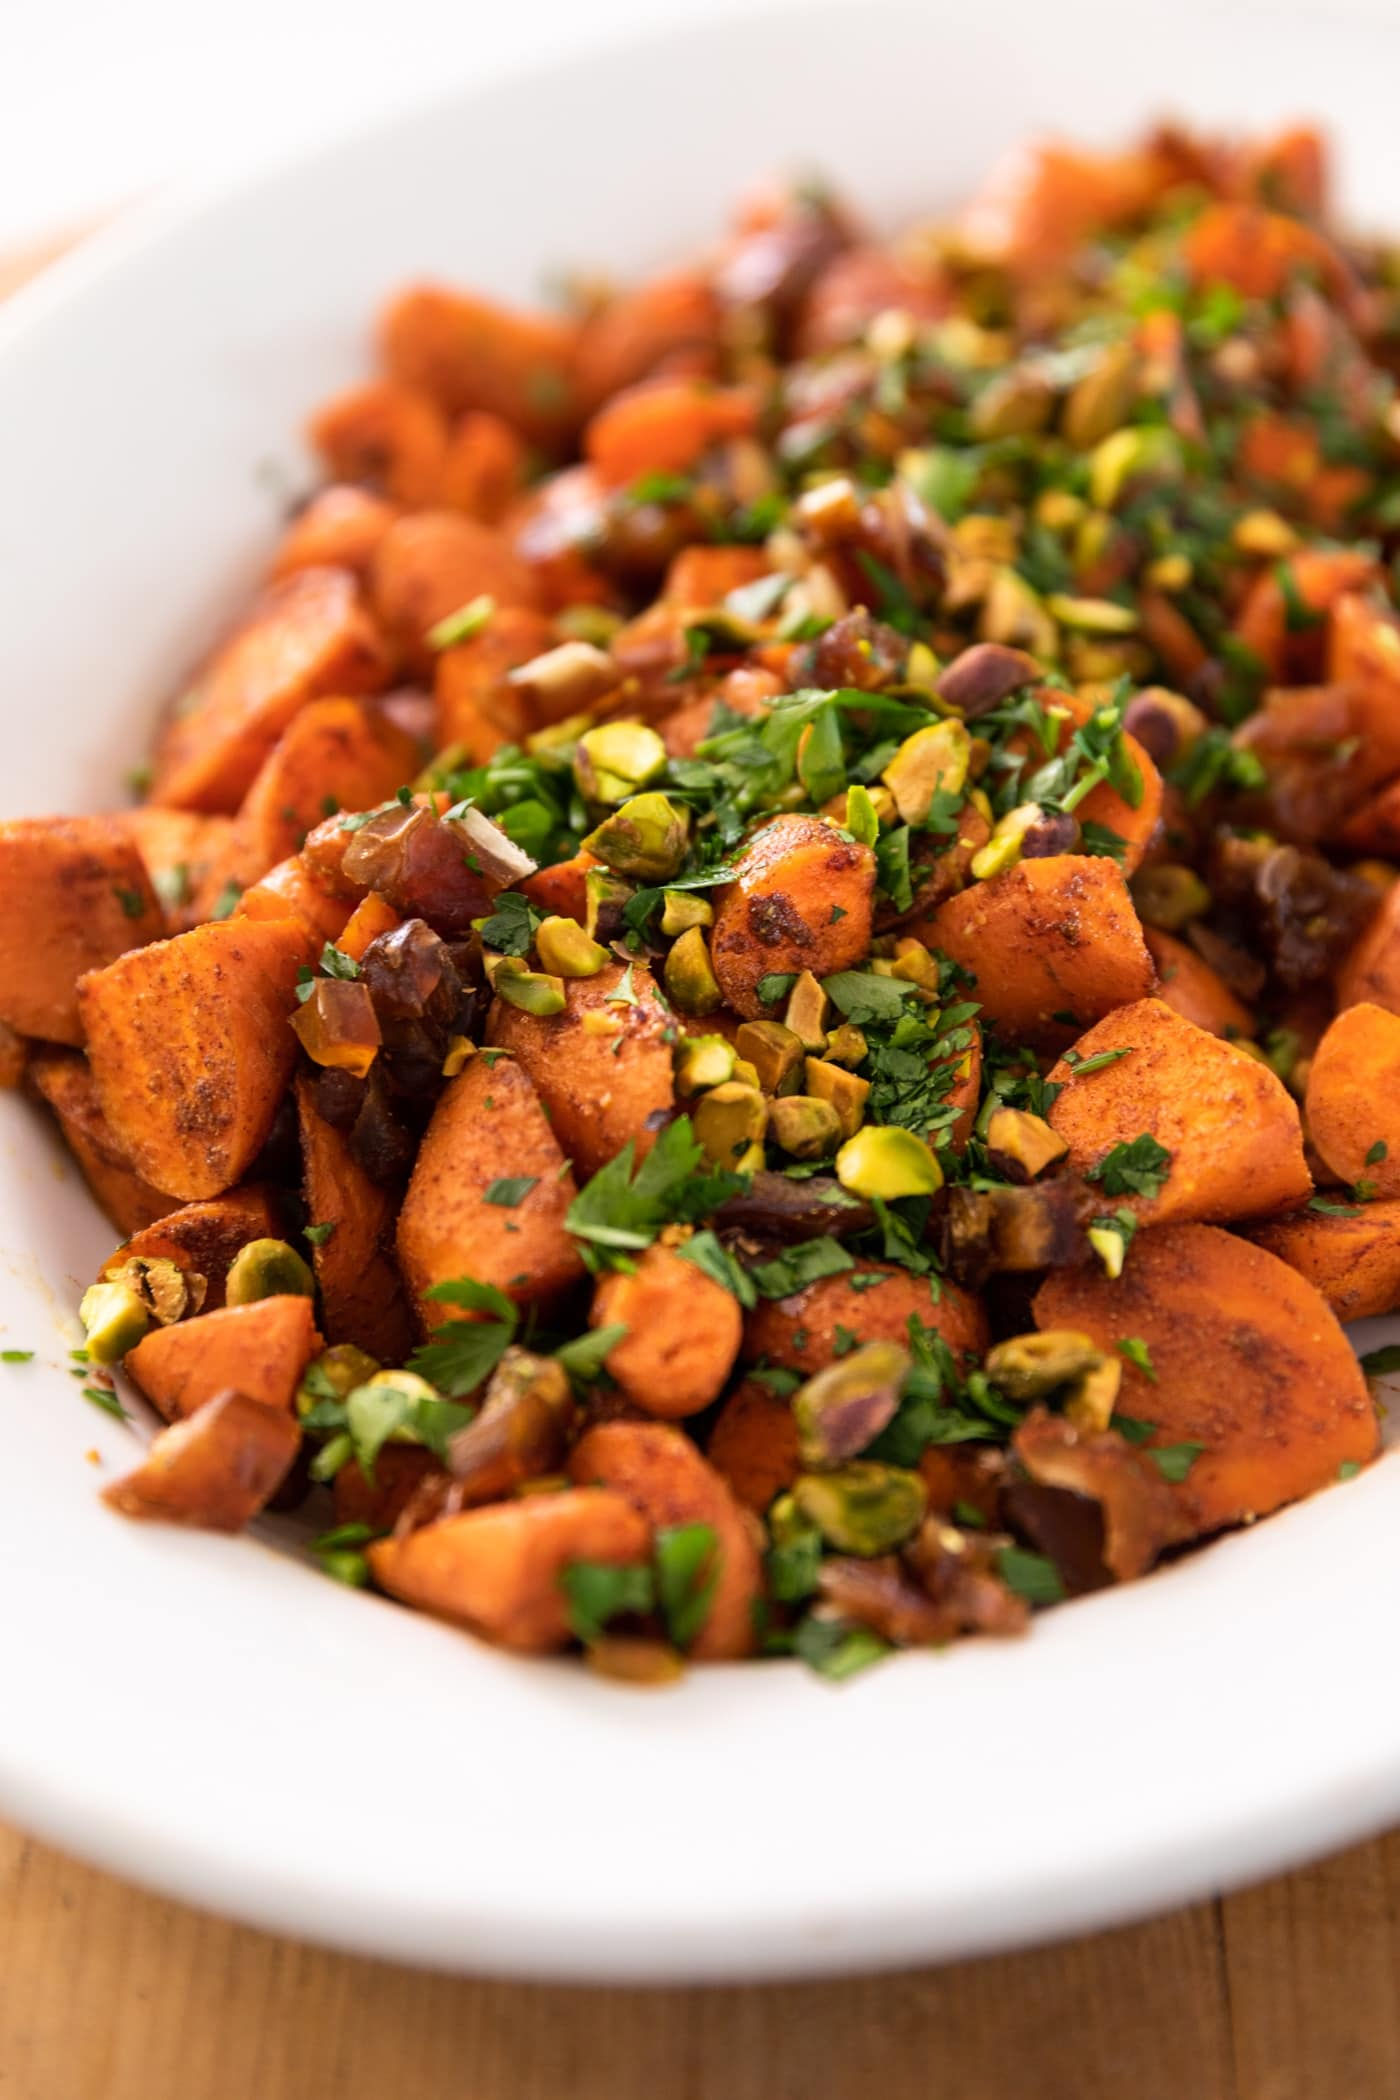 Roasted carrots piled into a white serving bowl topped with parsley, pistachios, and dates